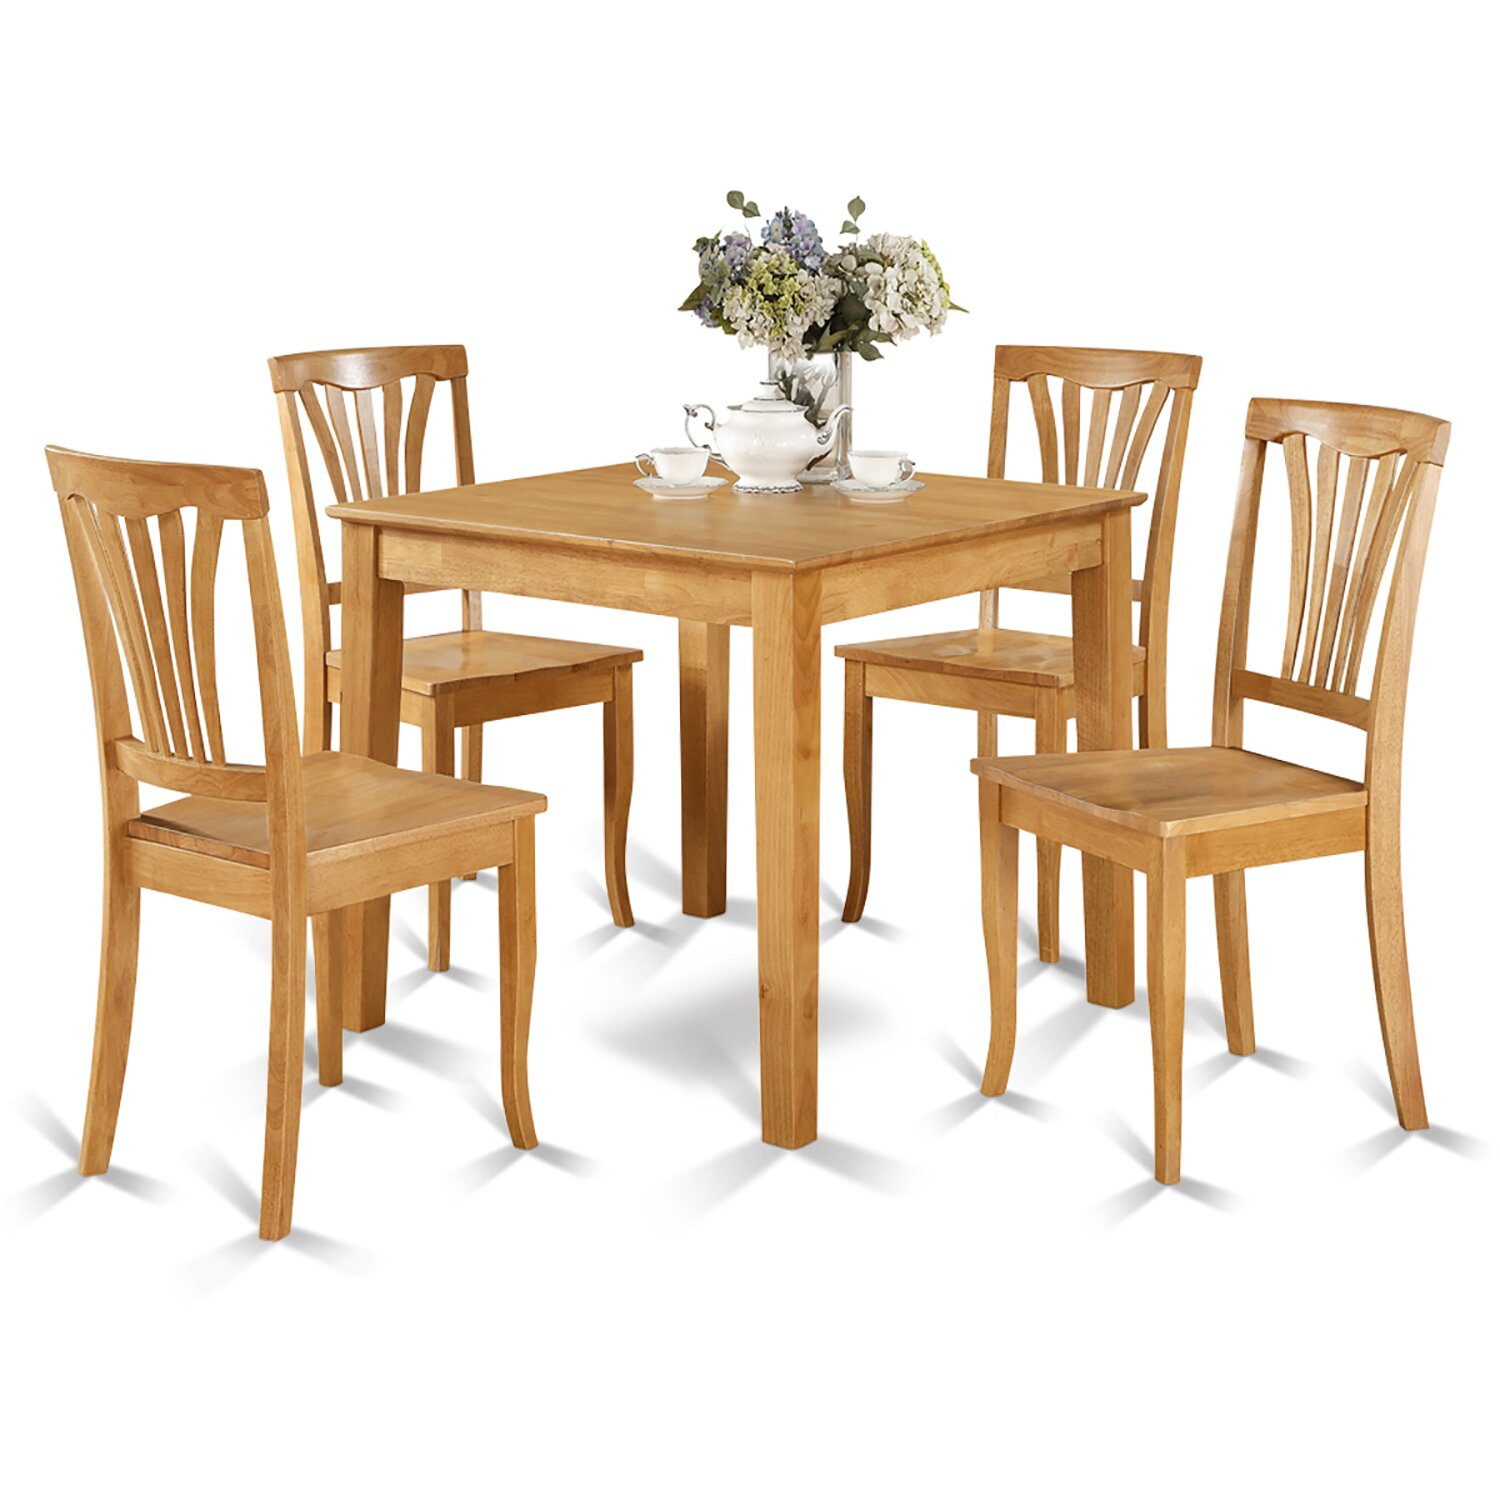 Wooden importers oxford 5 piece dining set reviews wayfair for Small kitchen table for 4